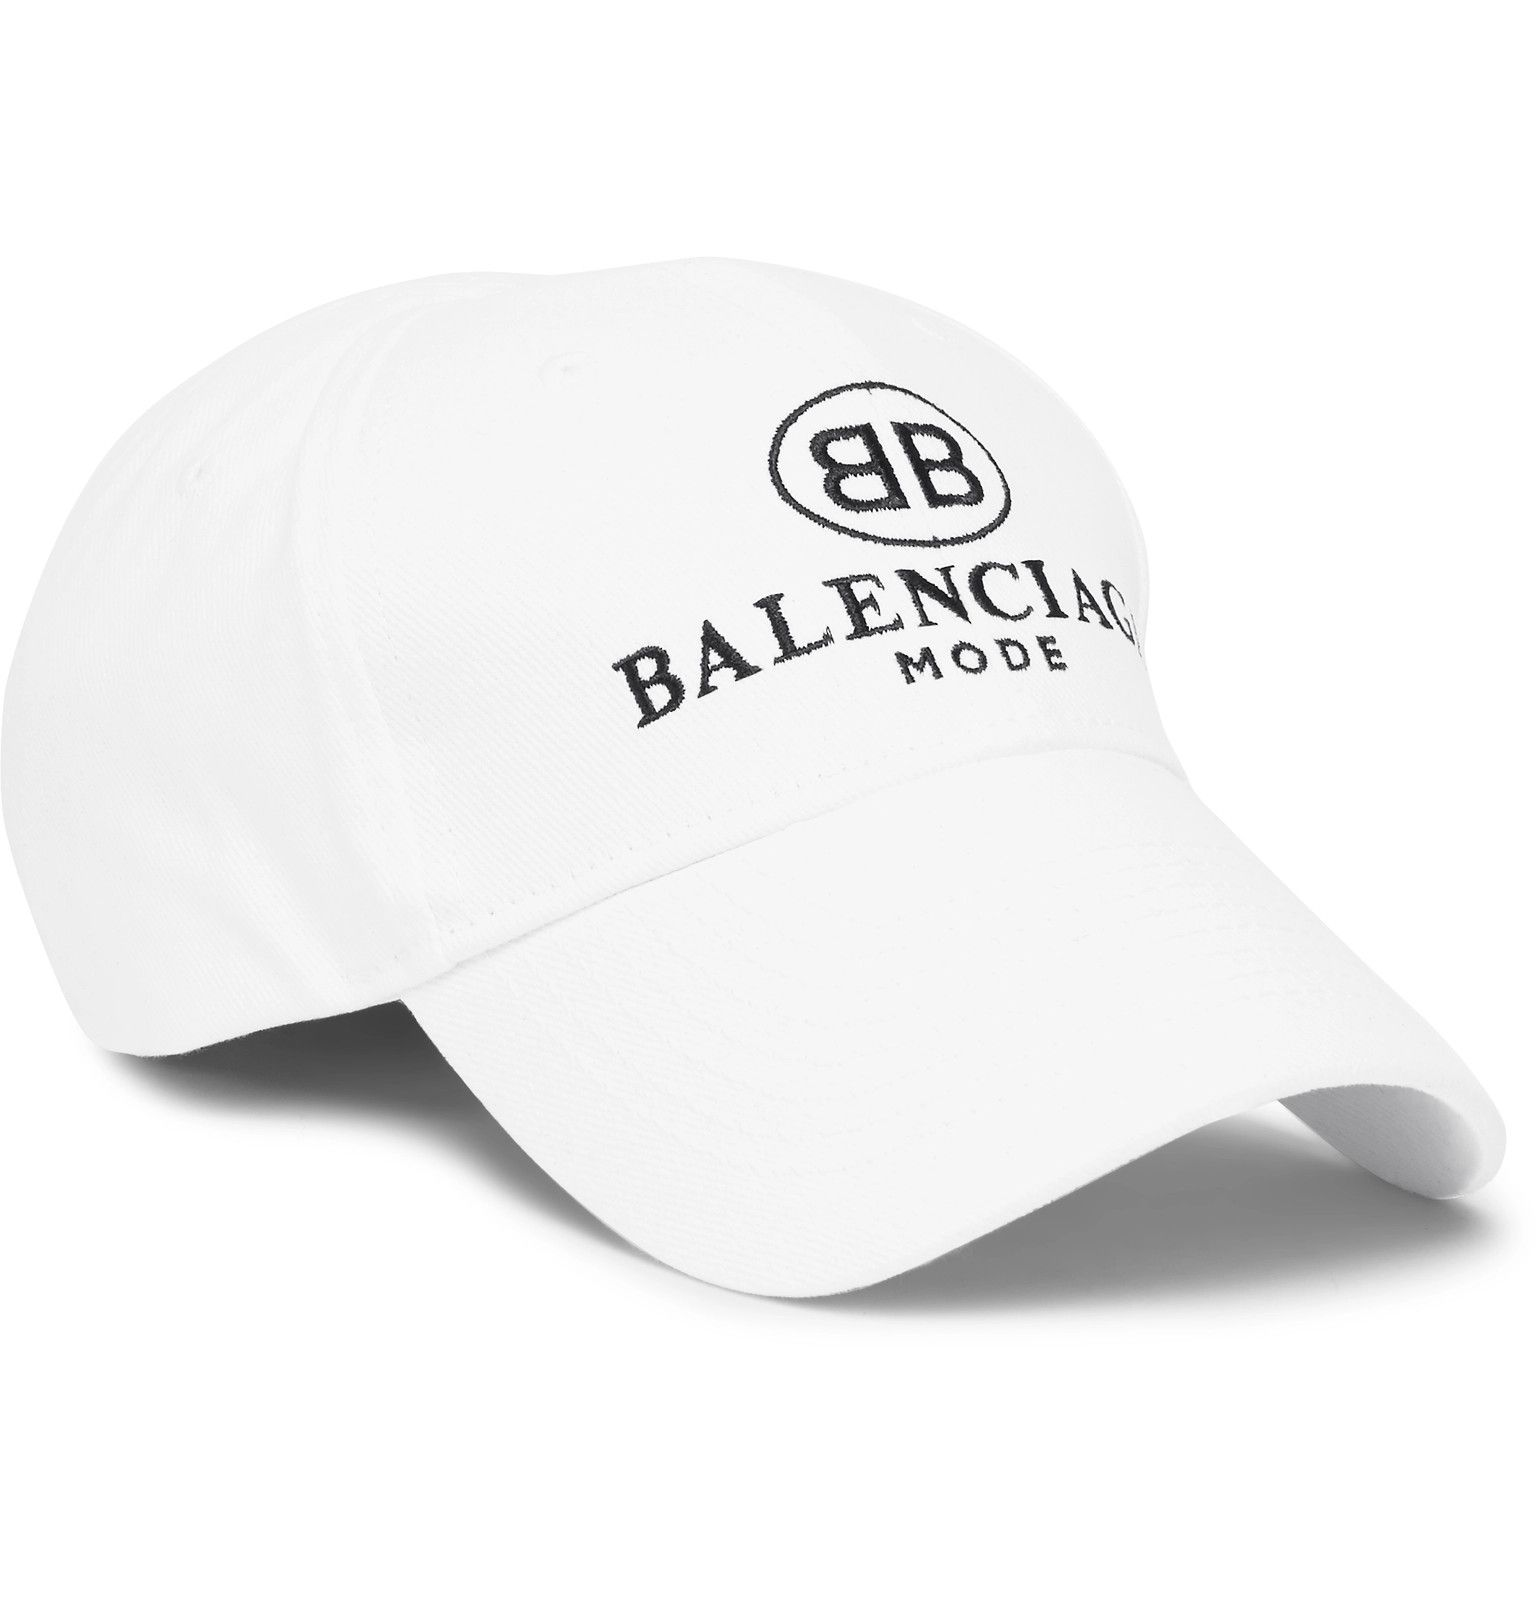 5ef22bcdf29 Balenciaga s cap is patterned with a double-B monogram and the brand s  emblem in an